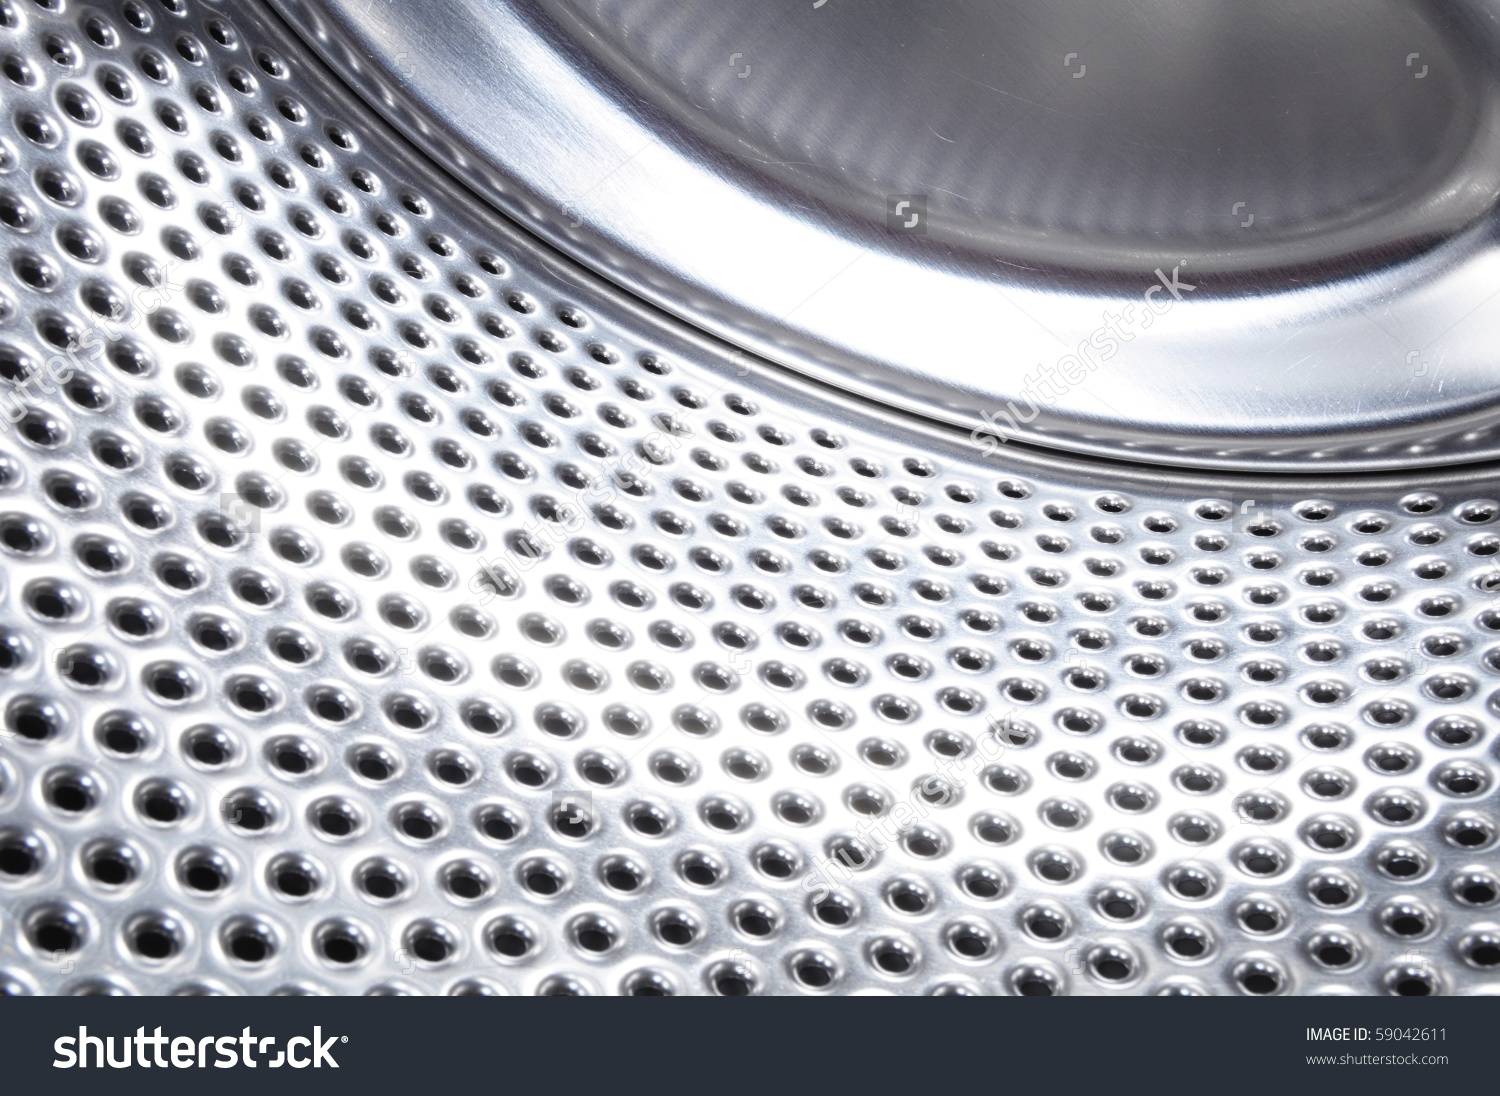 Washing Machine Drum Background Copyspace Showing Stock Photo.